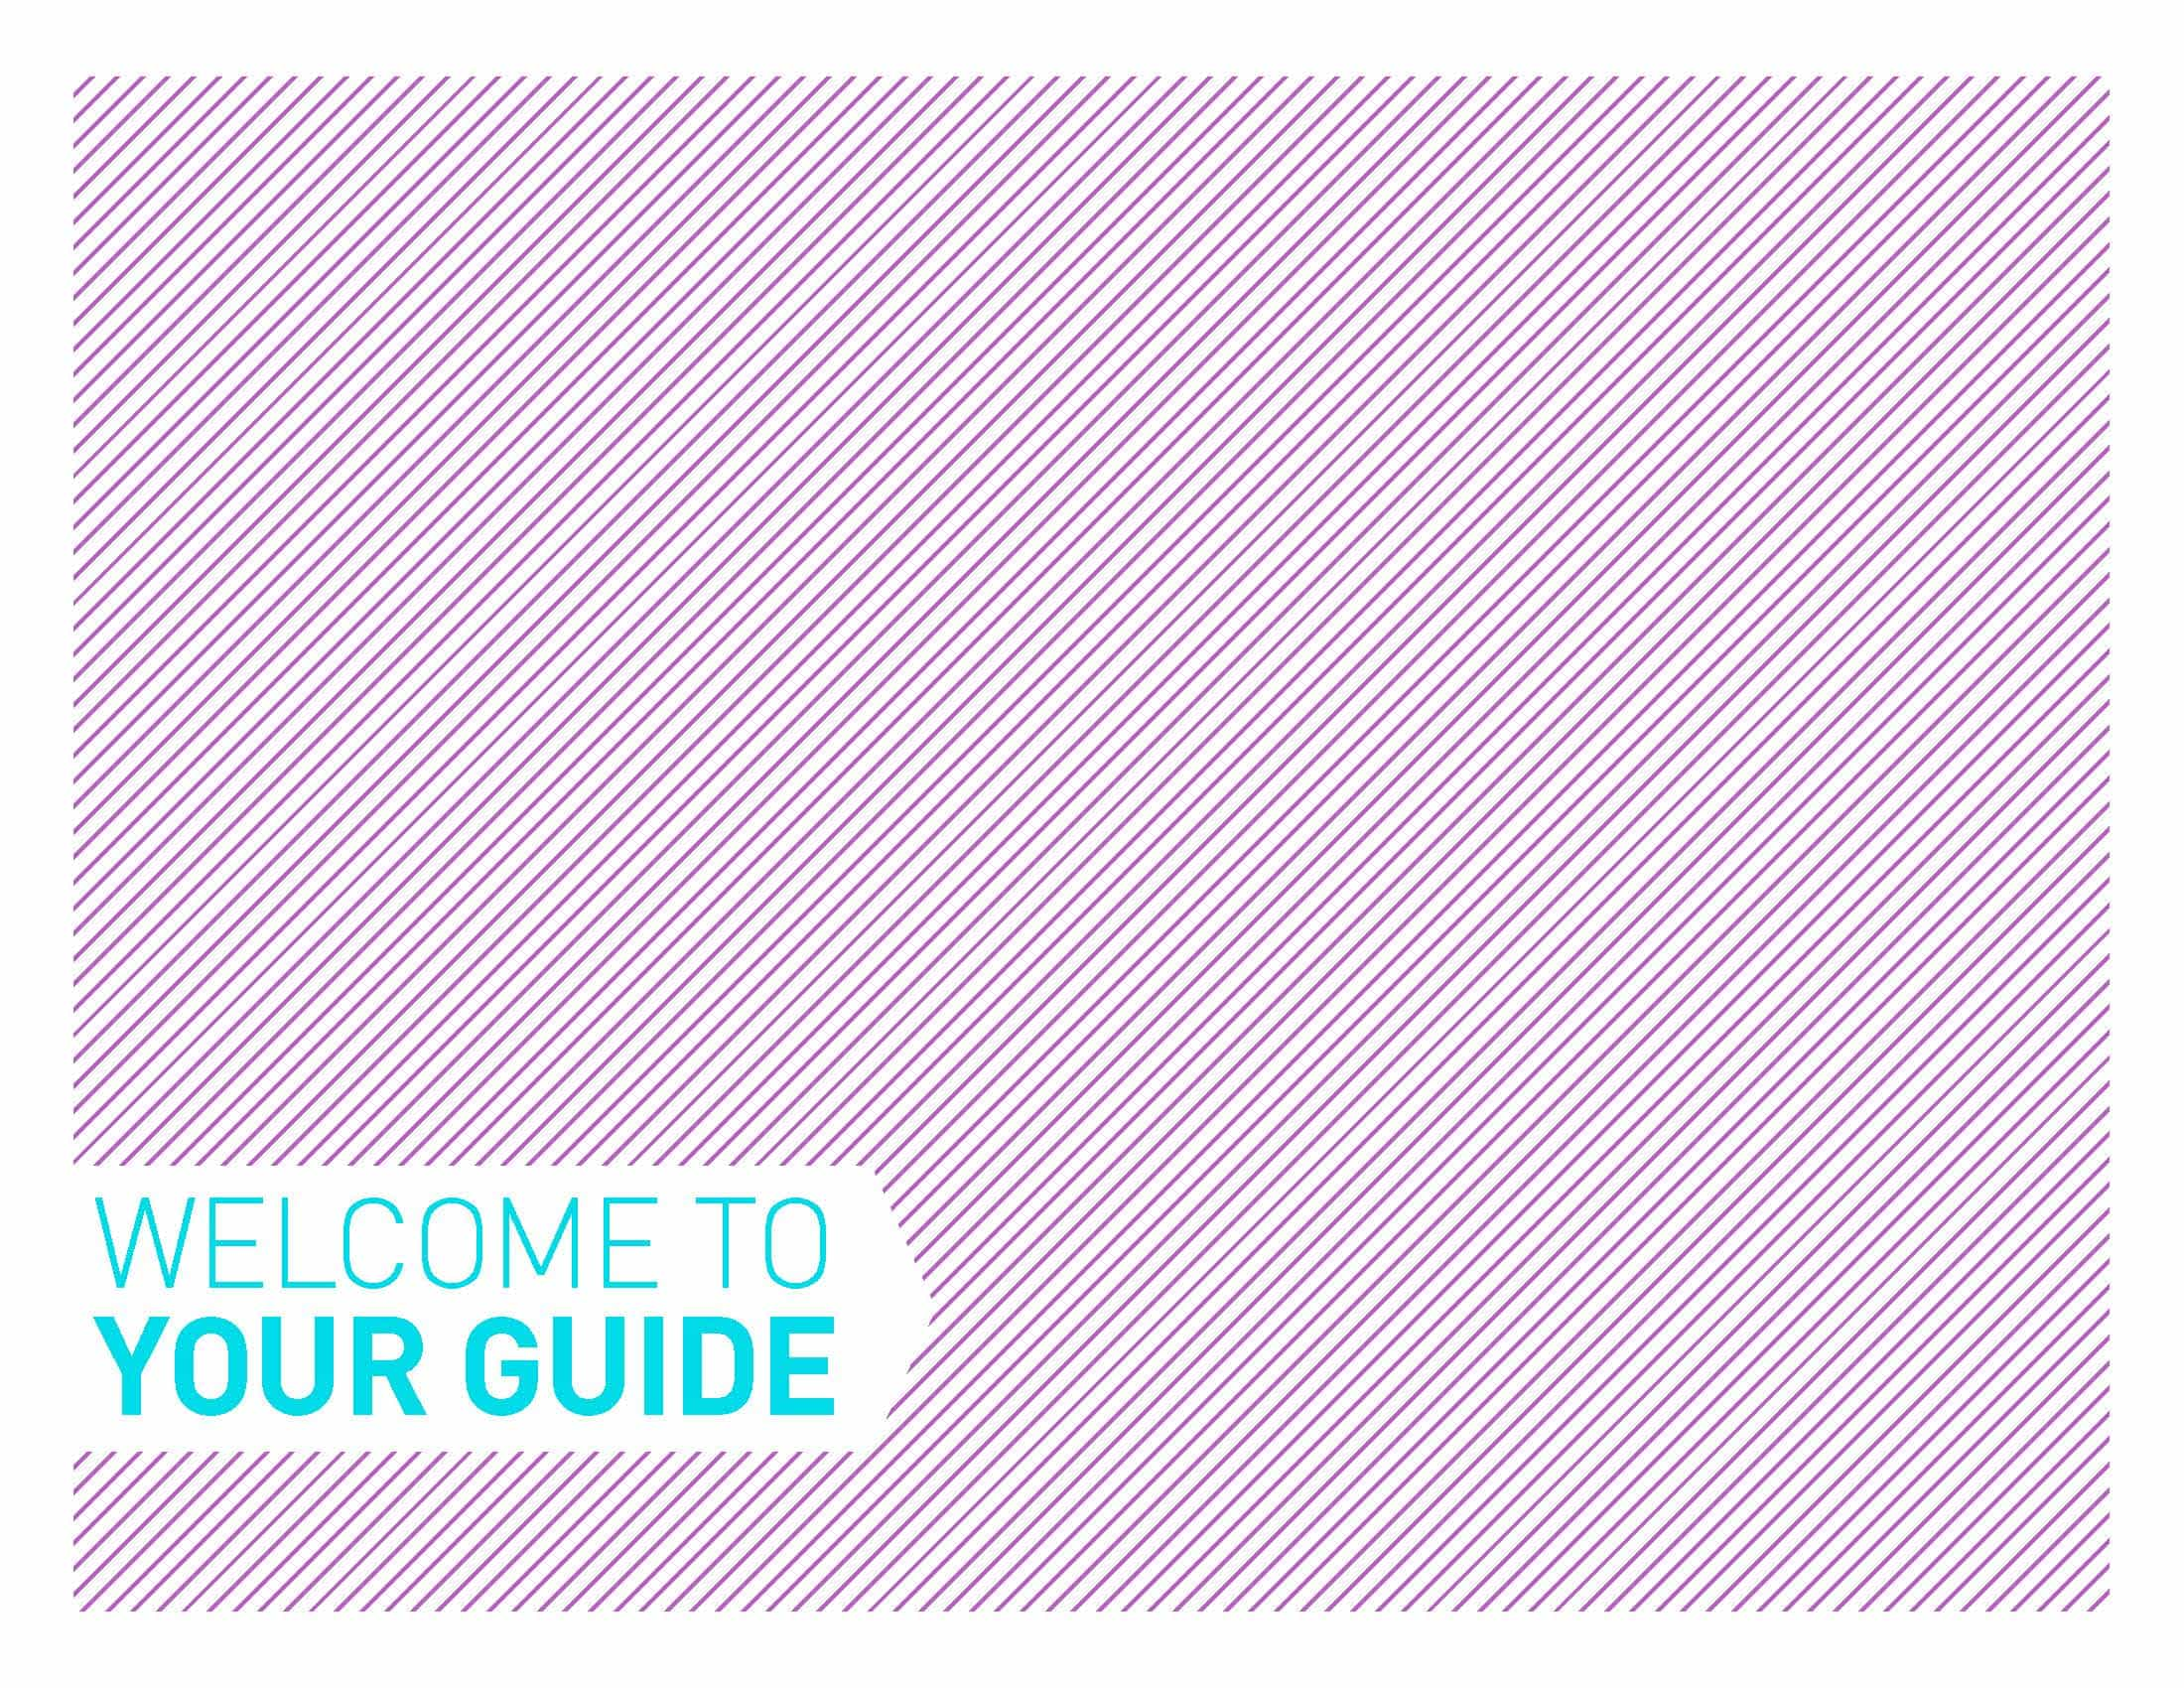 upsie-brand-guidlines-welcome-page